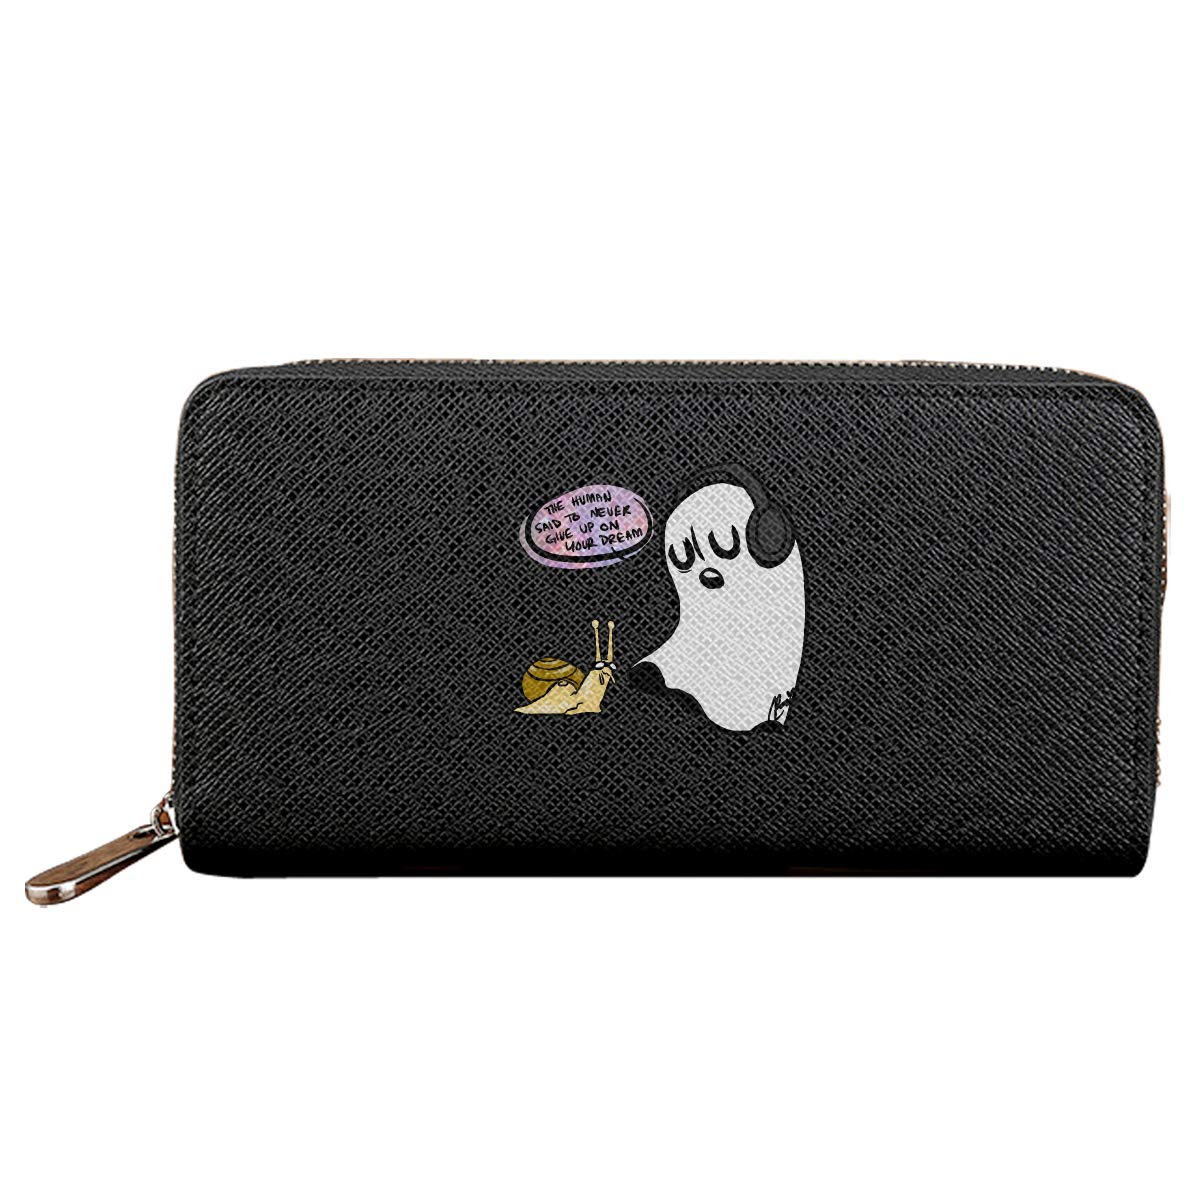 Undertale Ghost Non Credit Card With Zipper Wallet Business Casual Hand Wallet